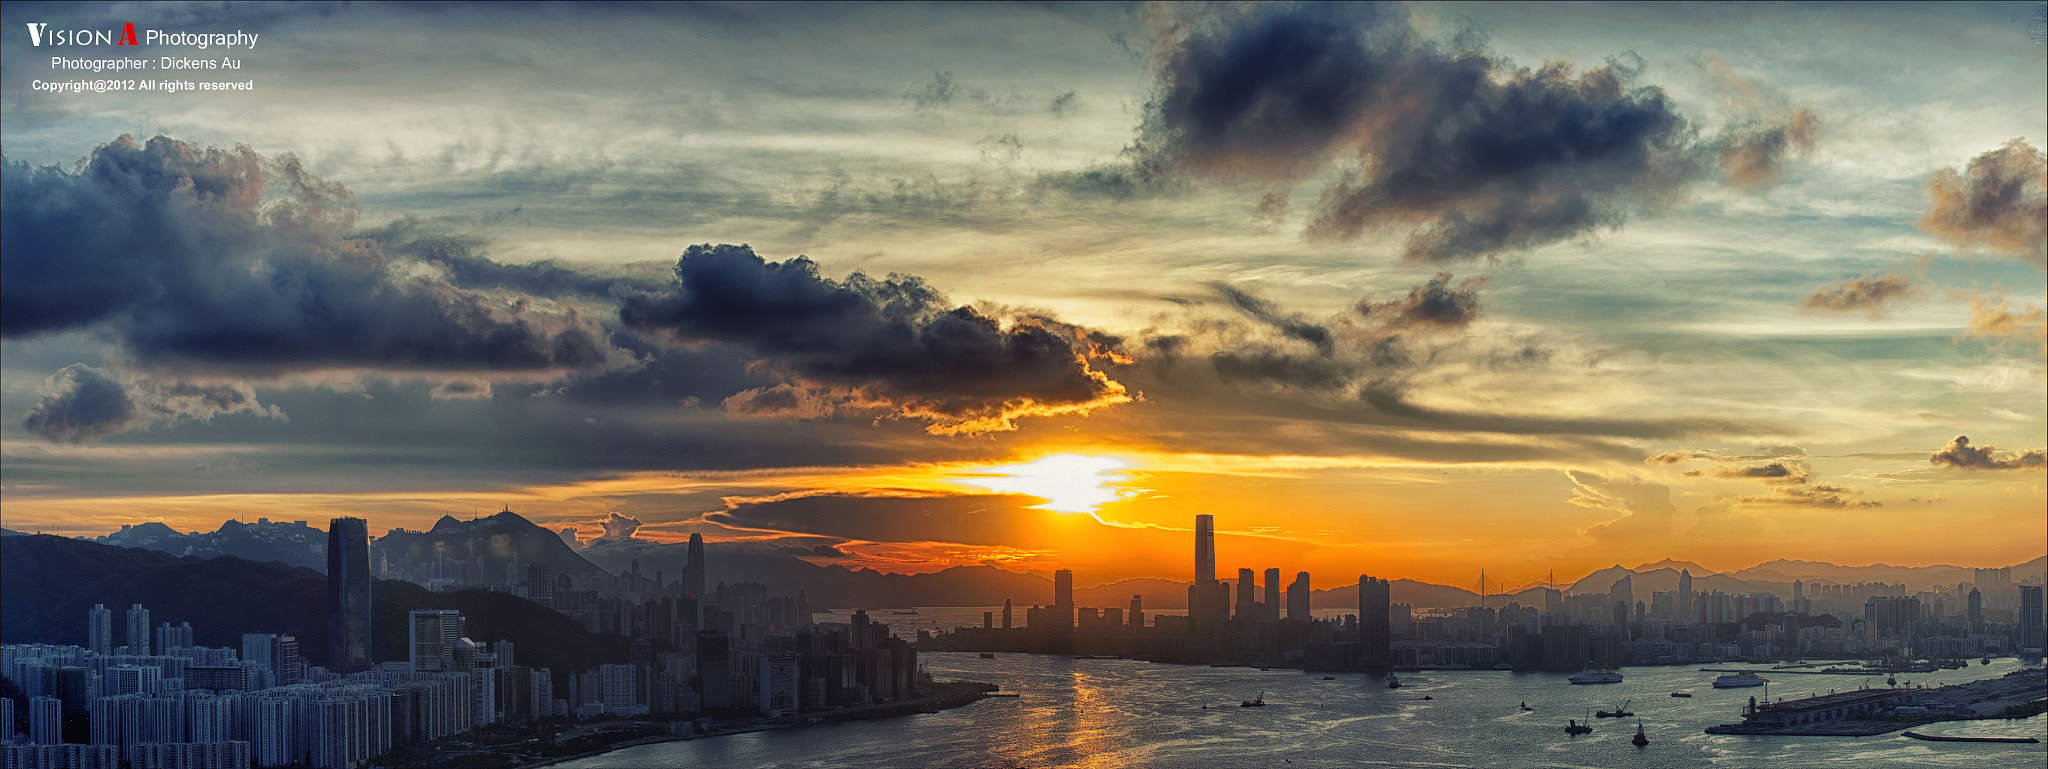 Photograph Golden Hope @ Hong Kong by Dickens Au on 500px